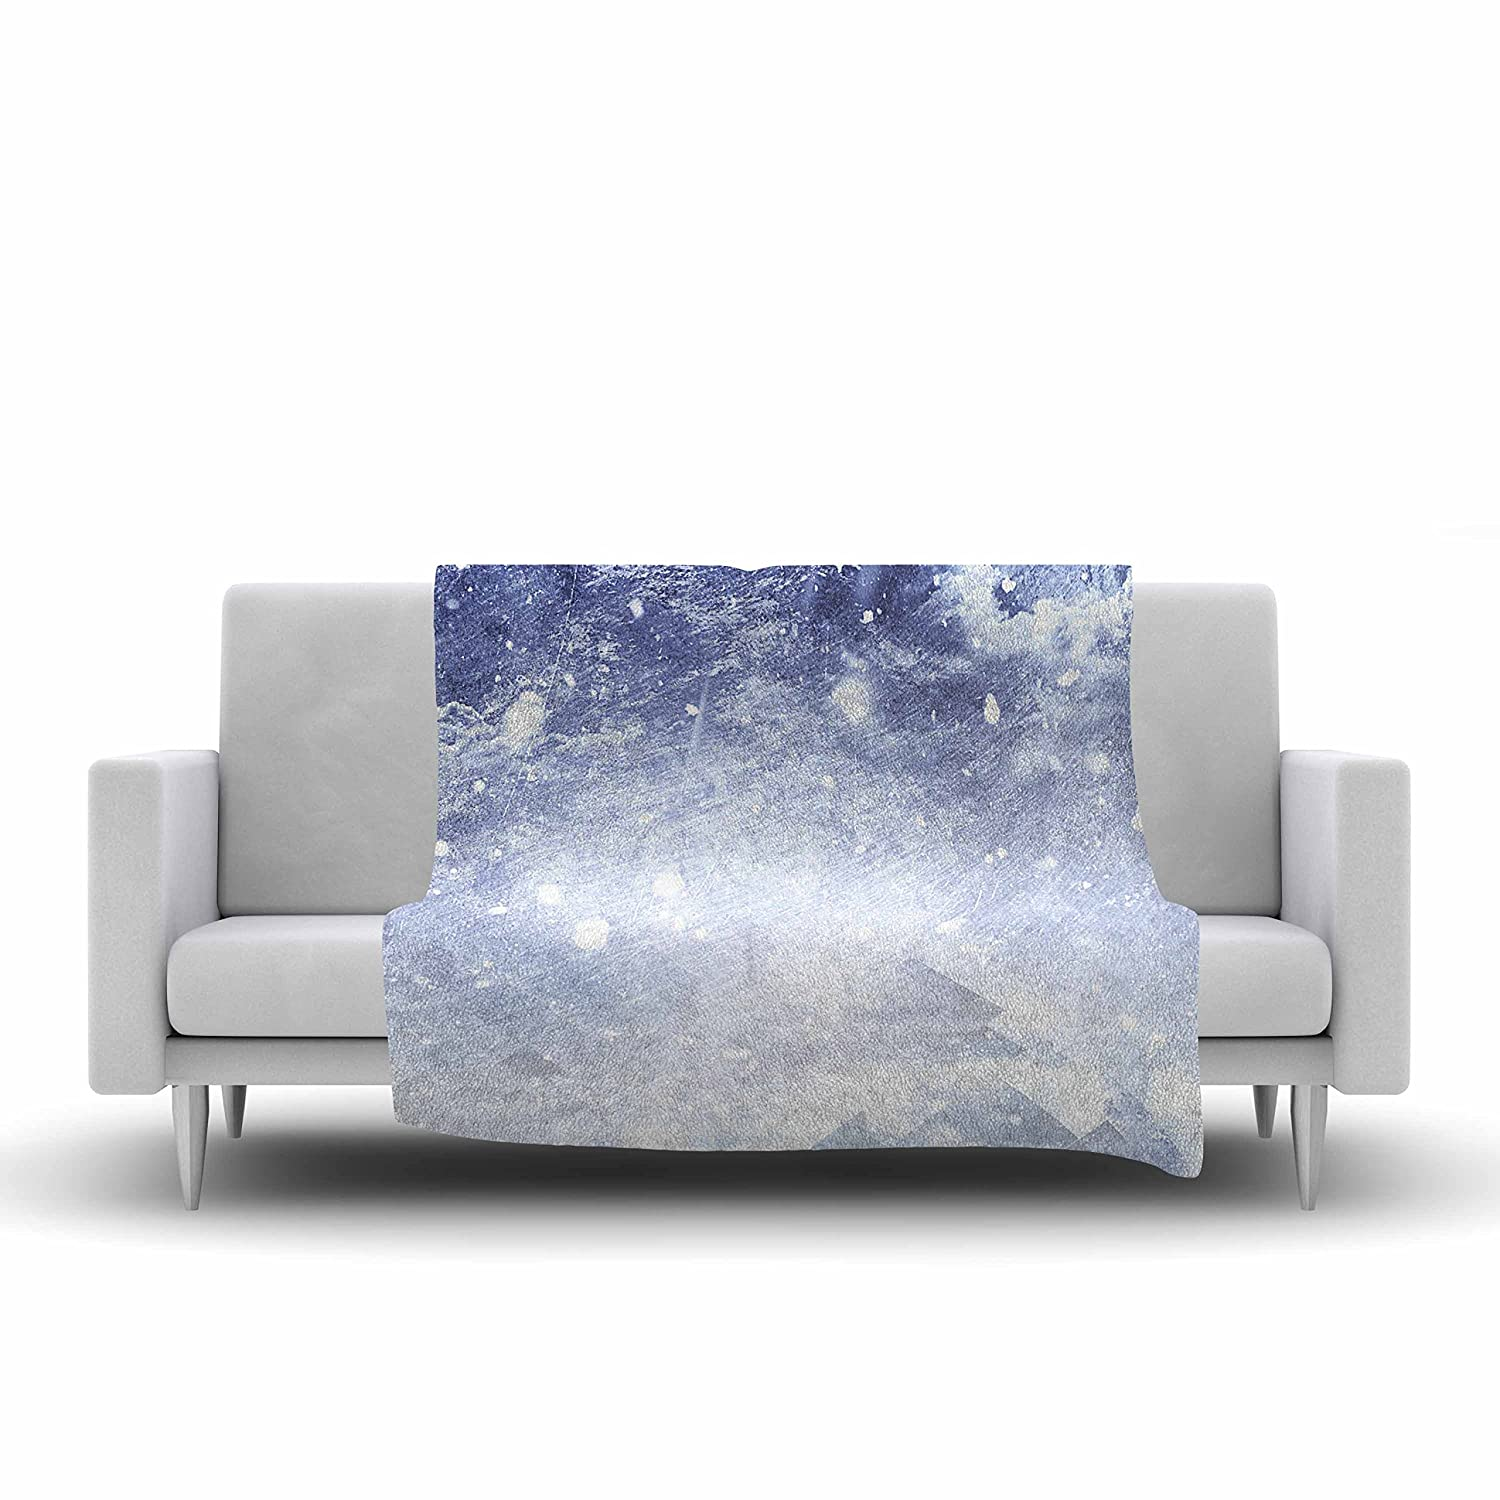 60 X 50 60 by 50-Inch Kess InHouse ULF Harstedt Even Mountains Get Cold Blue White Fleece Throw Blanket